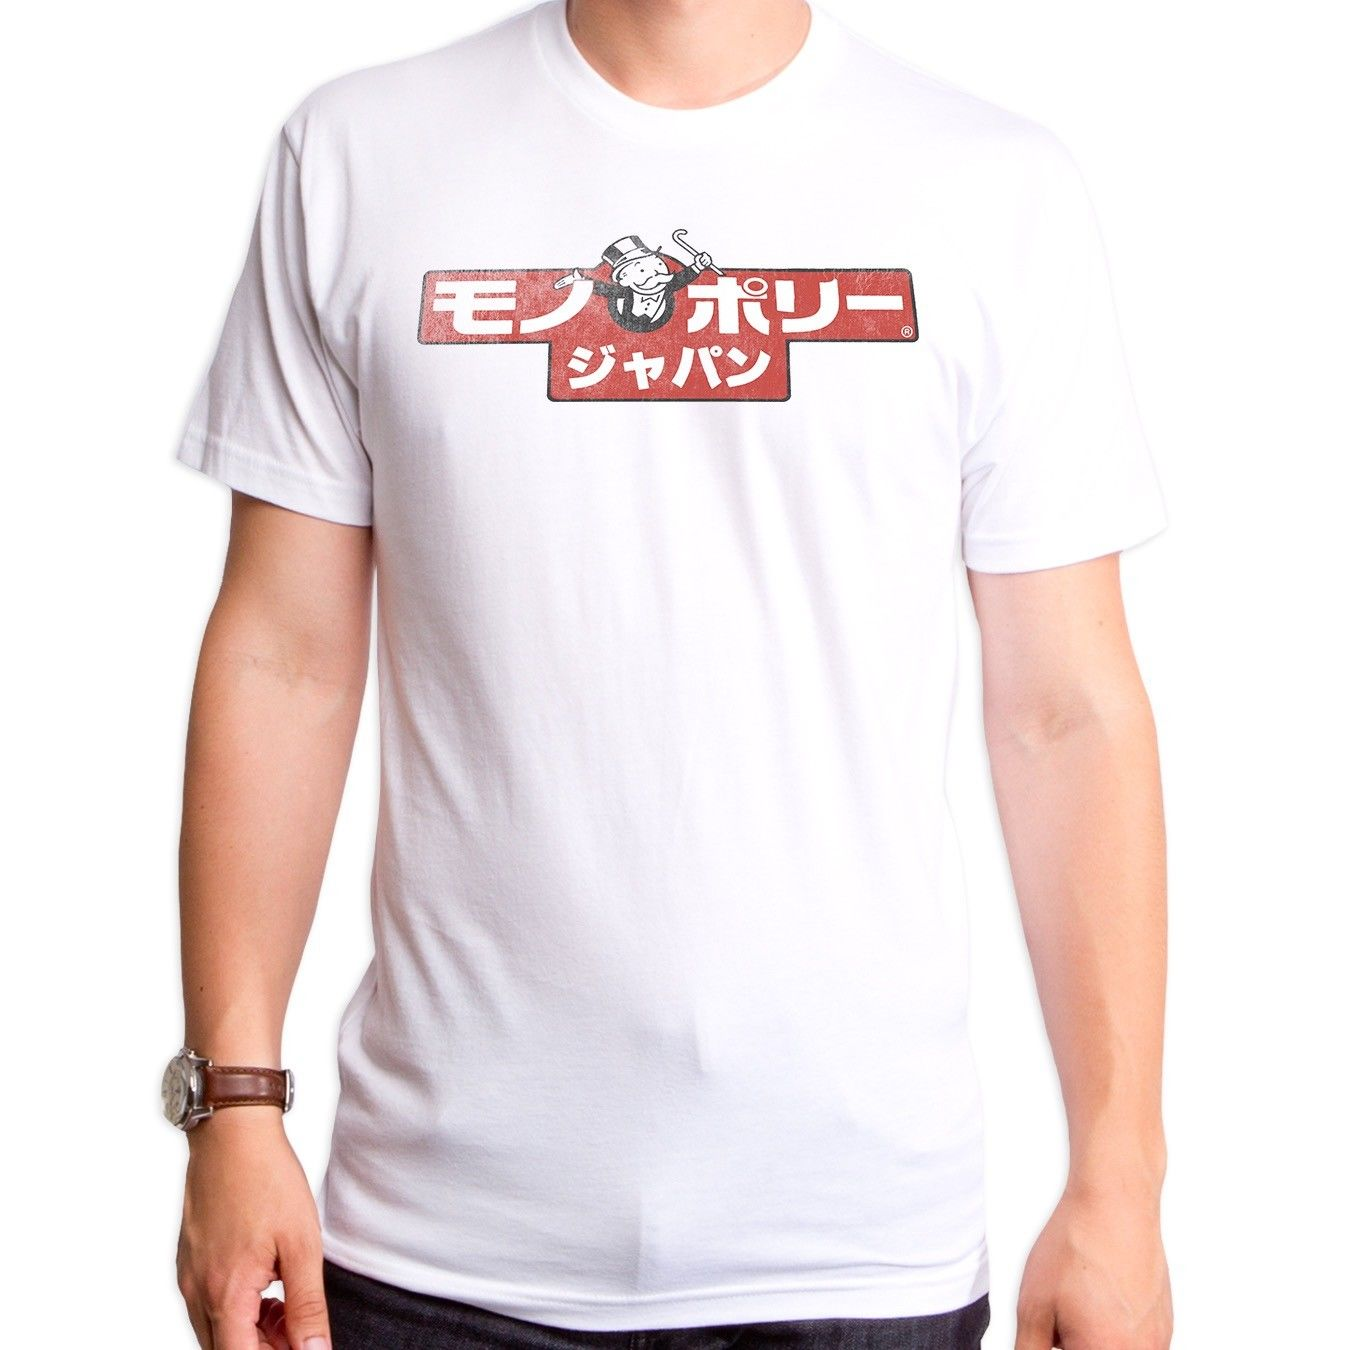 Authentic Japanese Mr Monopoly Board Game Adult T-shirt S M L X 2X top